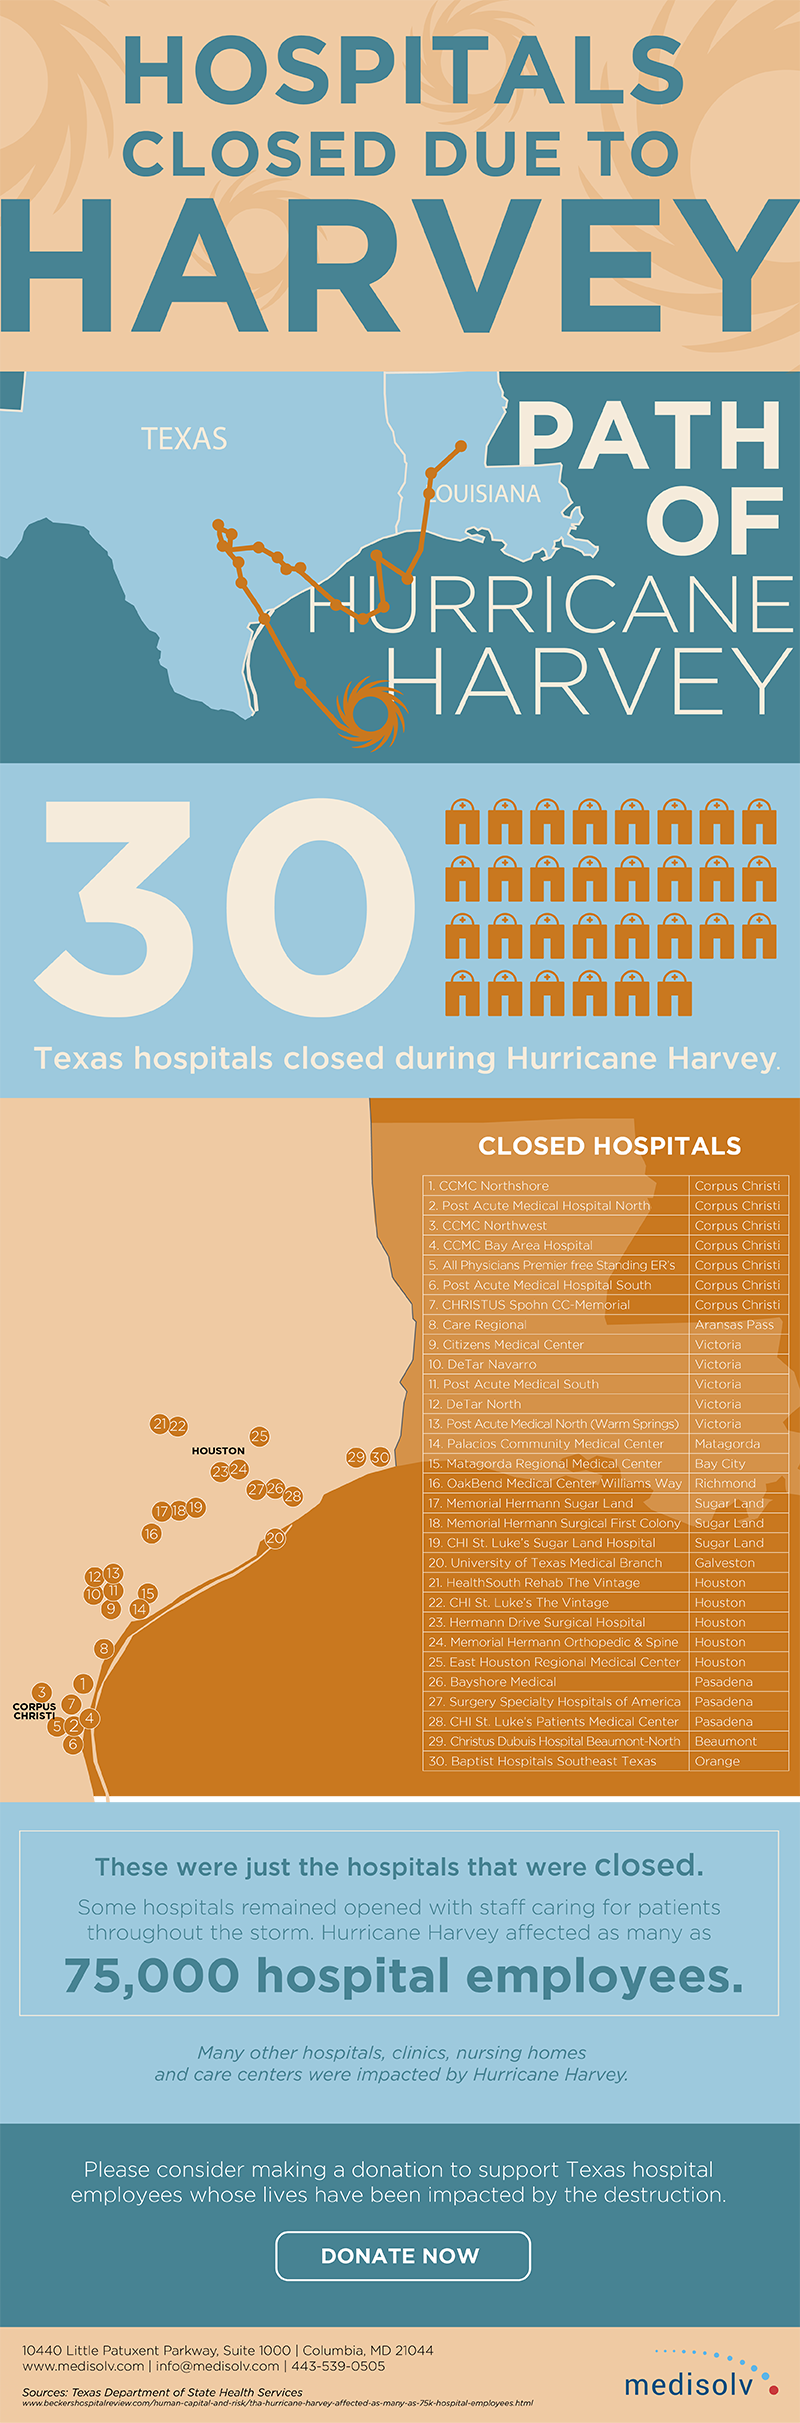 hurricane-harvey-hospitals-closed-01.png